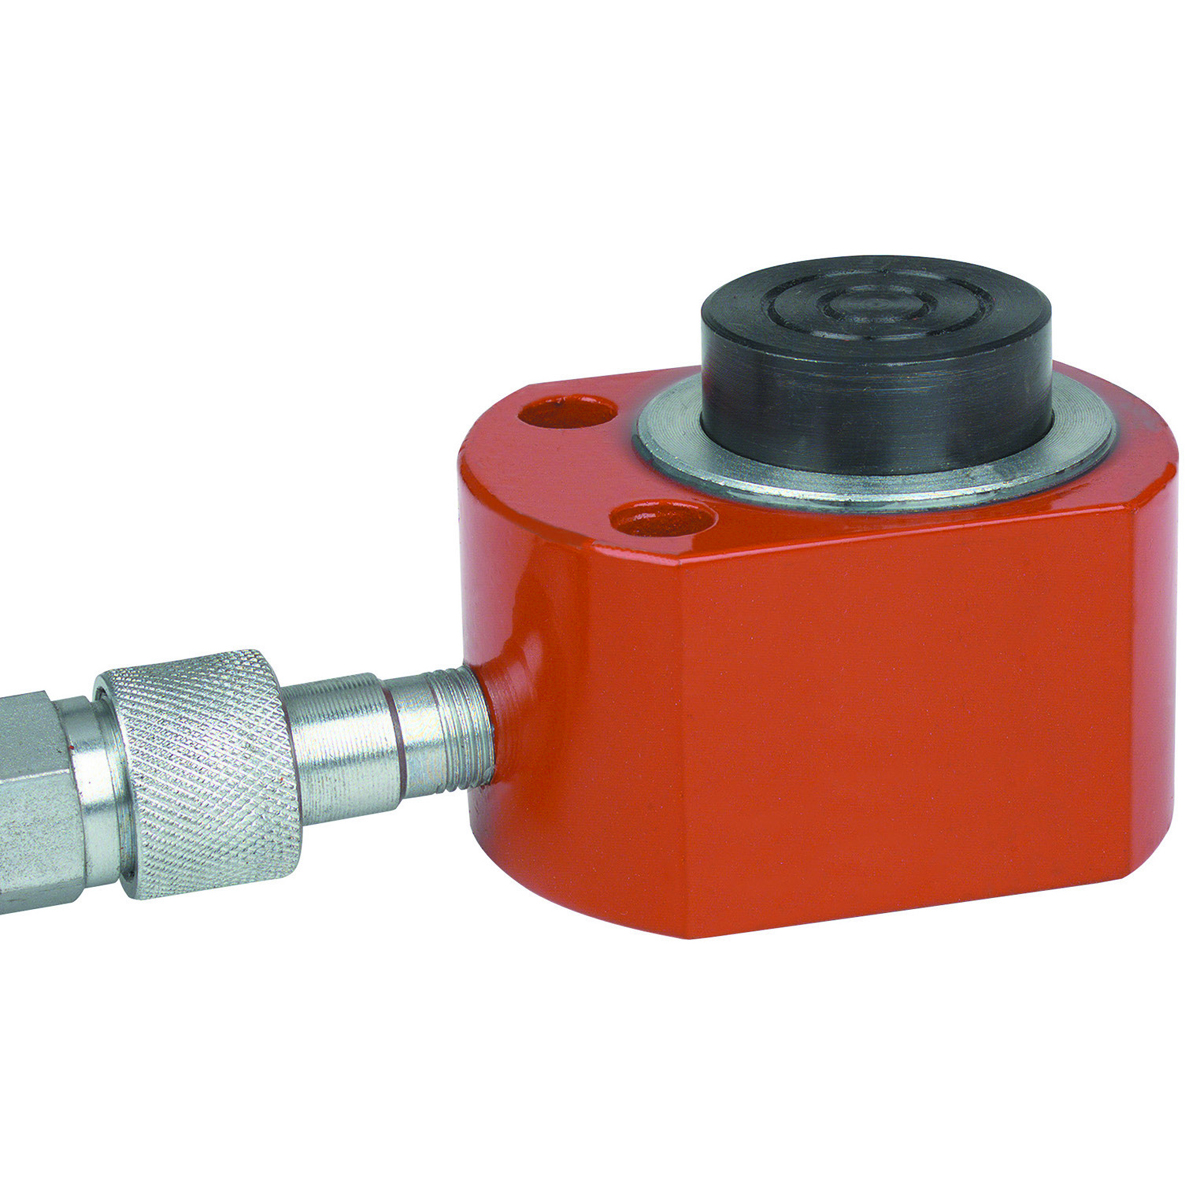 Hydraulic Cylinder Pin Puller : Ton porta power jack pictures to pin on